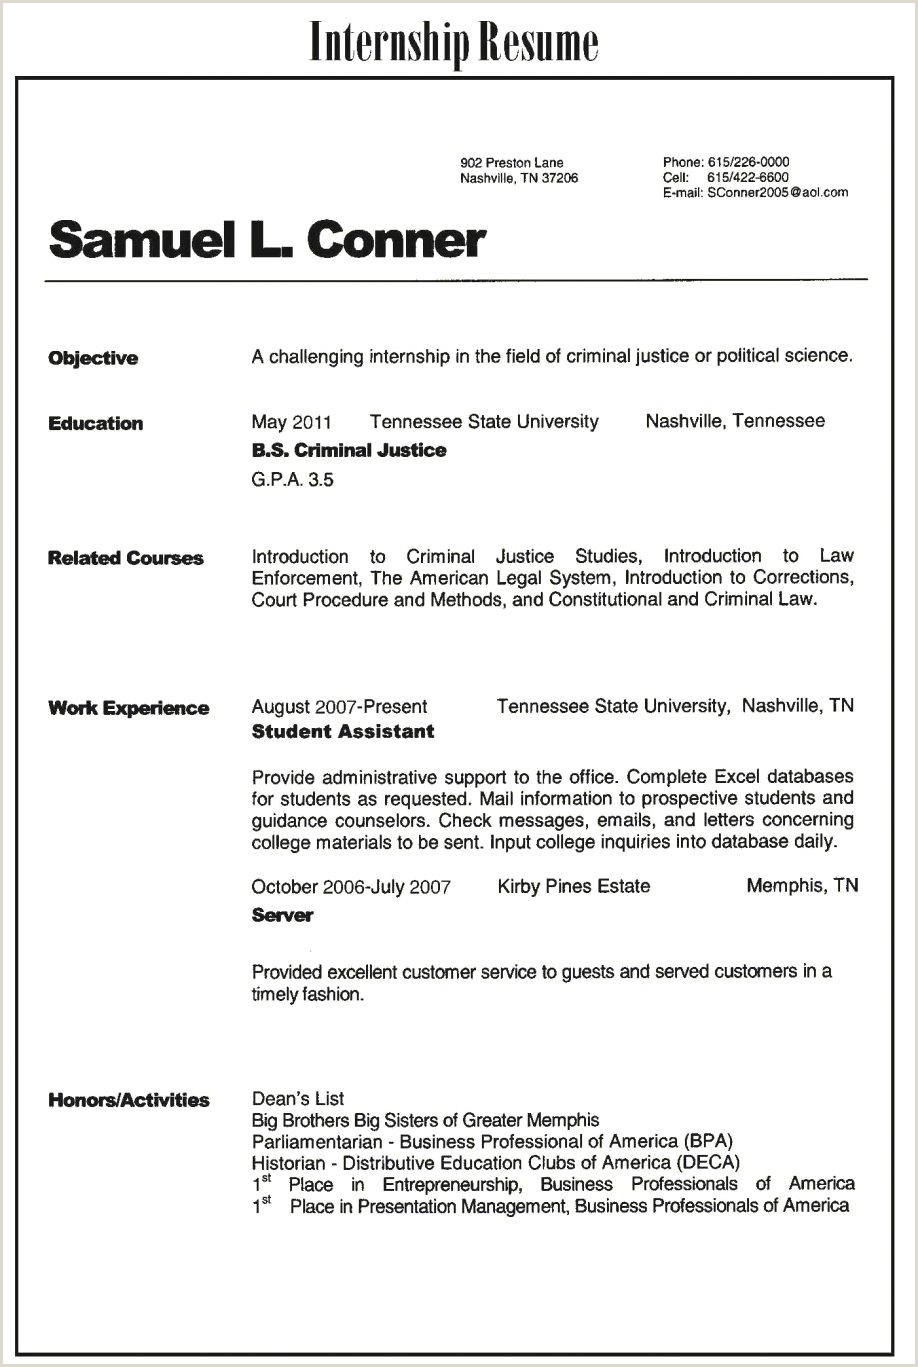 79 Cool graphy Resume Objective Statement Examples